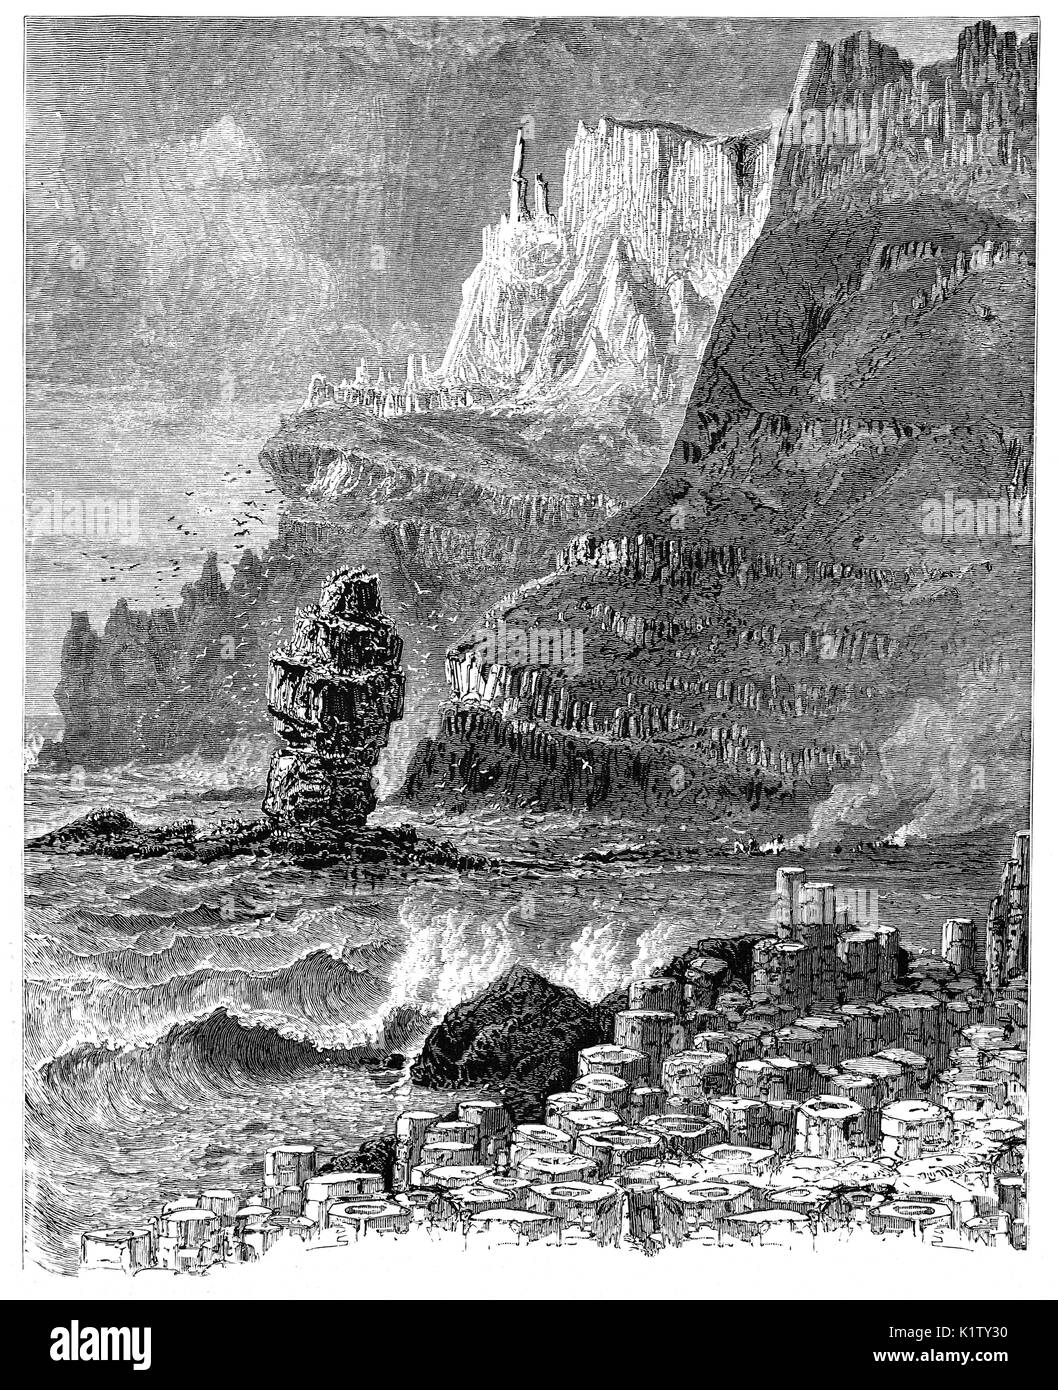 1870: 1870: The Giant's Causeway, an area of about 40,000 interlocking basalt columns, the result of an ancient Stock Photo